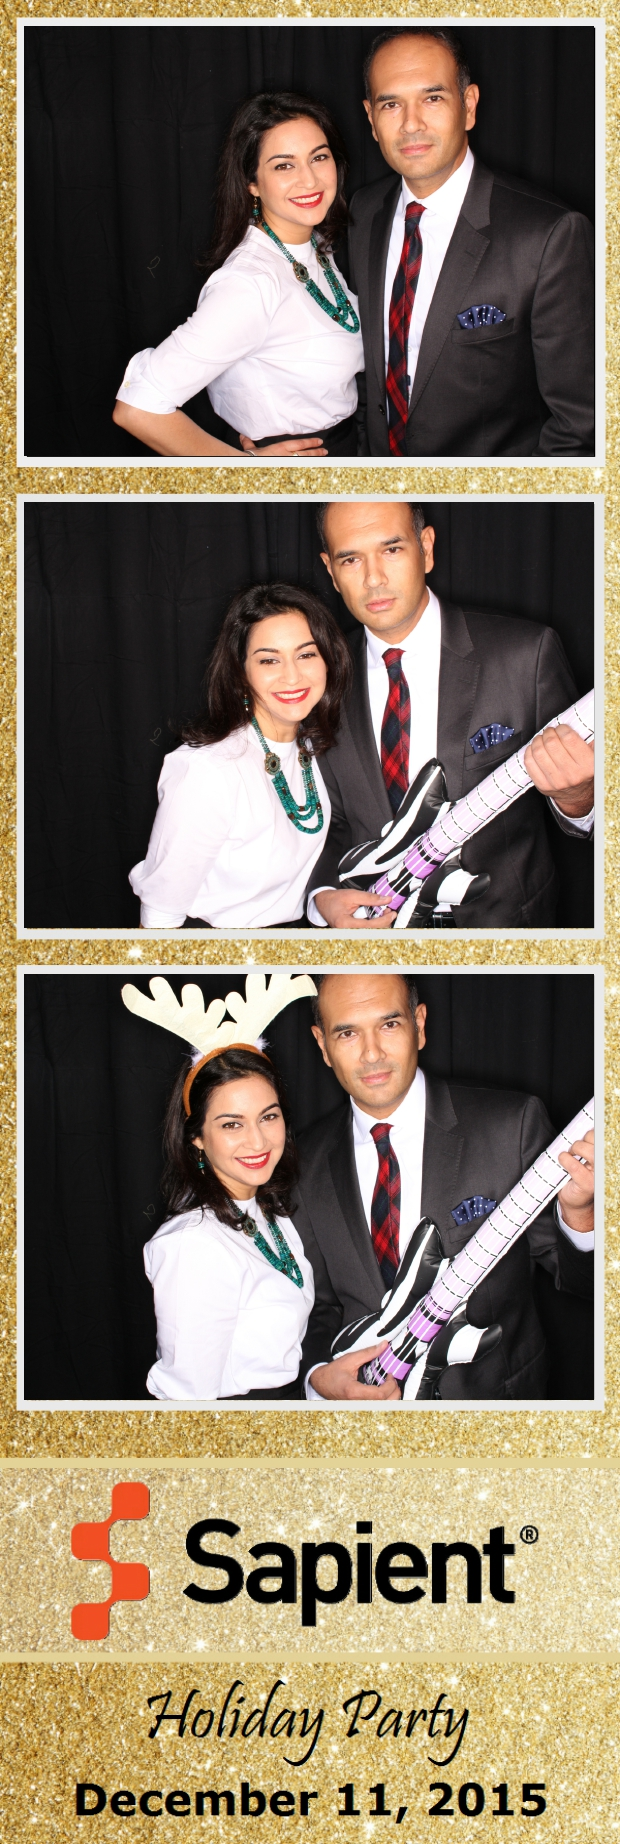 Guest House Events Photo Booth Sapient Holiday Party (23).jpg